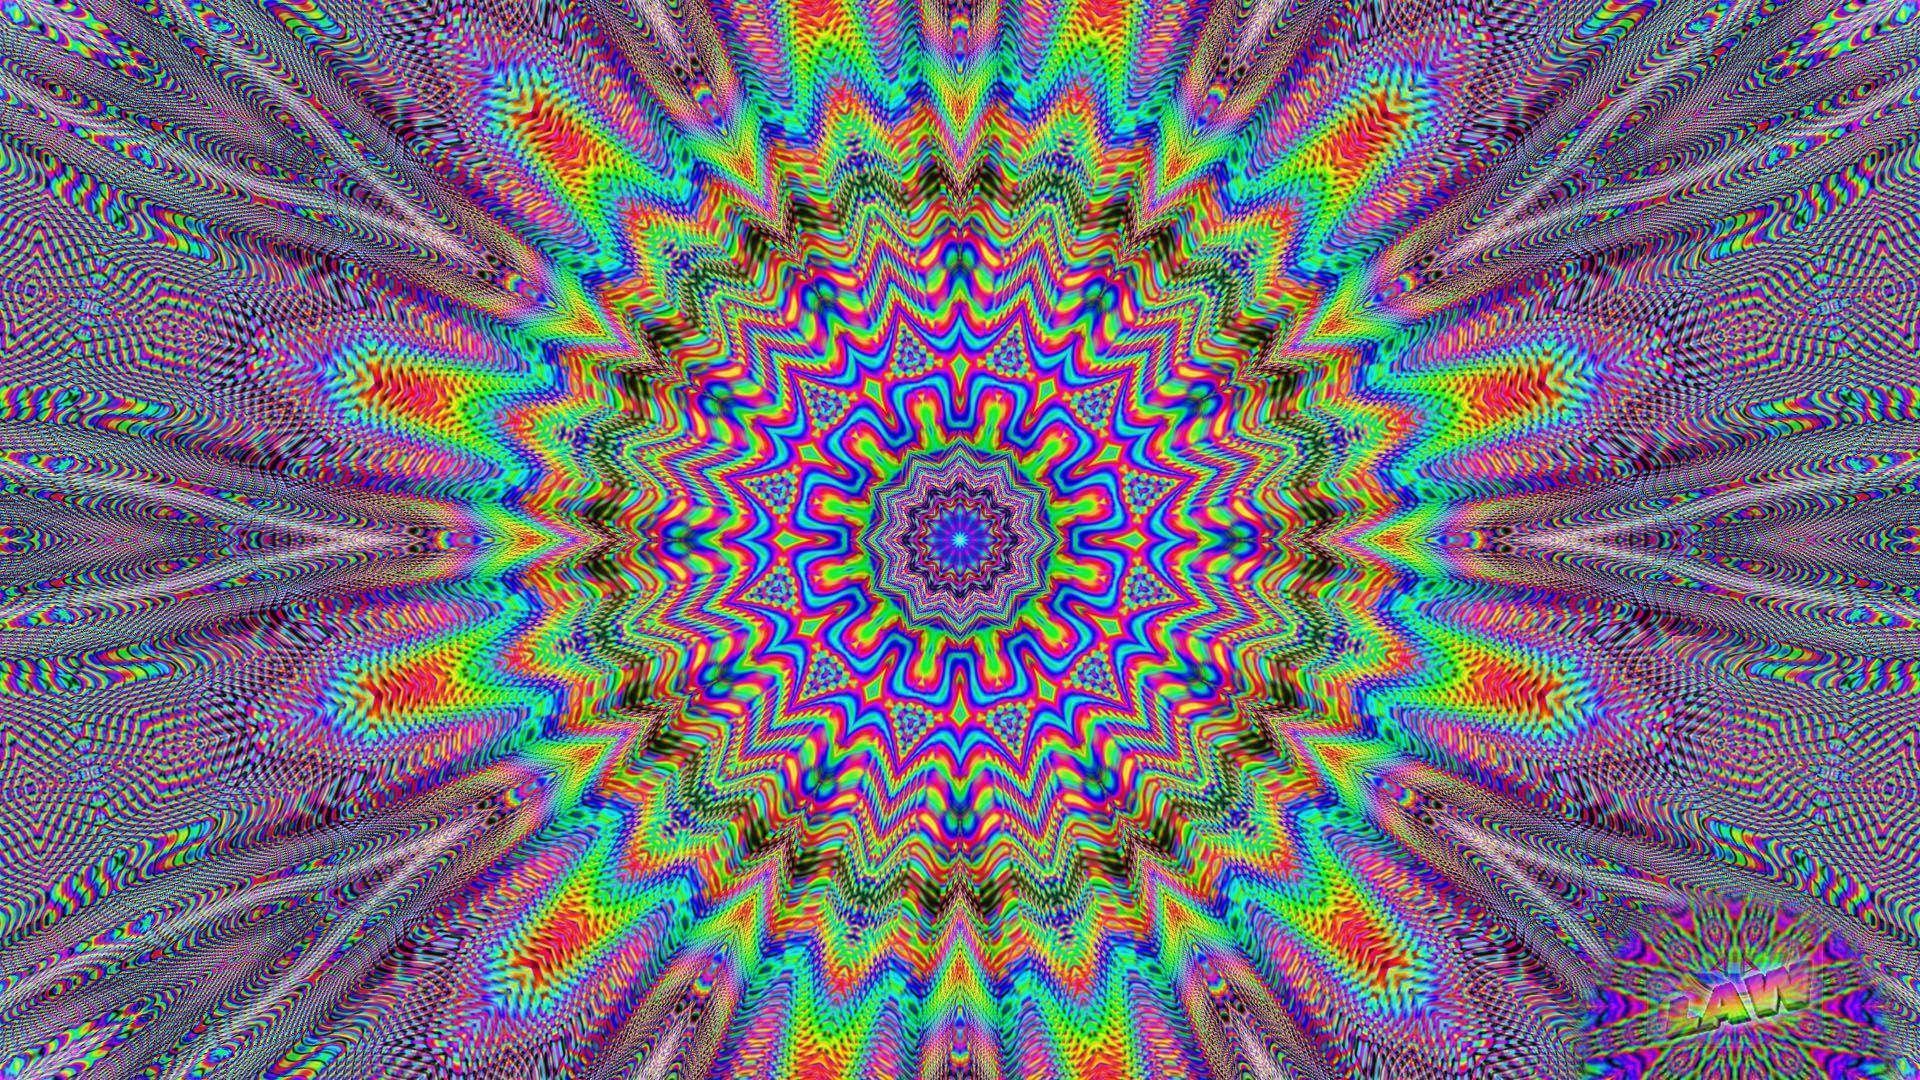 Mandala Computer Wallpaper, Awesome Mandala Pictures and ...